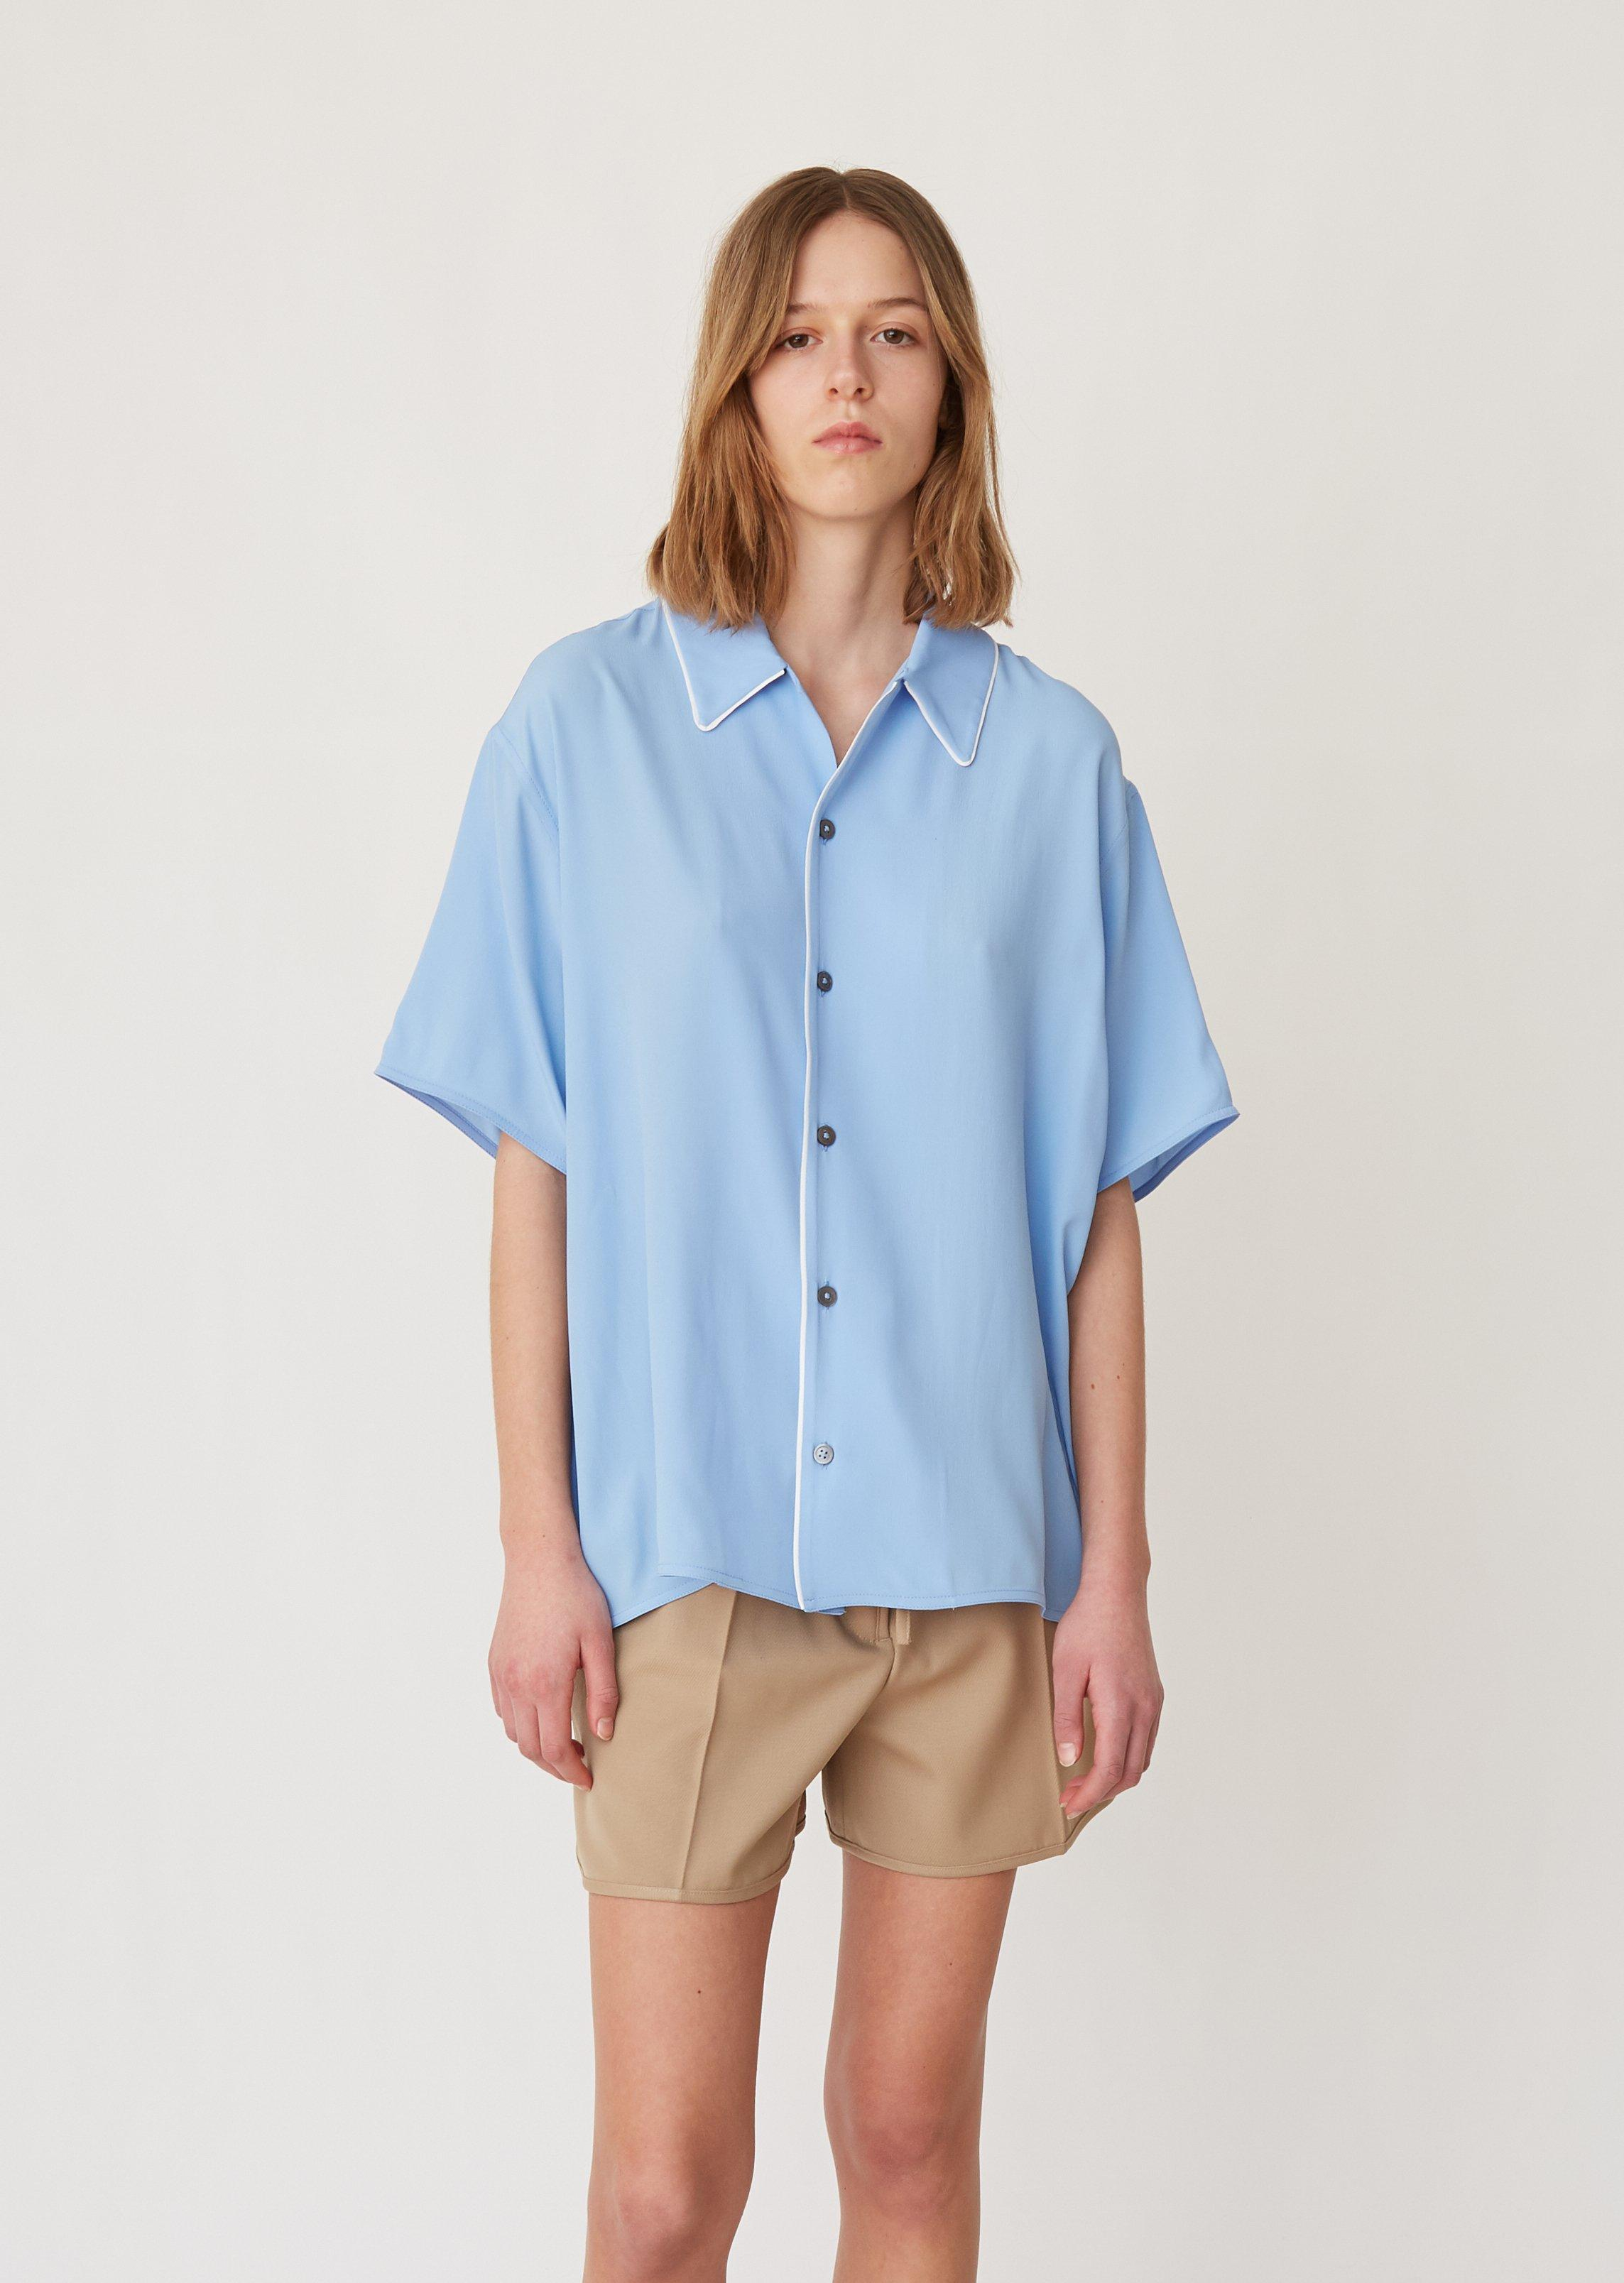 cc2a31fde73aff Lyst - Marni Washed Crepe Blouse in Blue